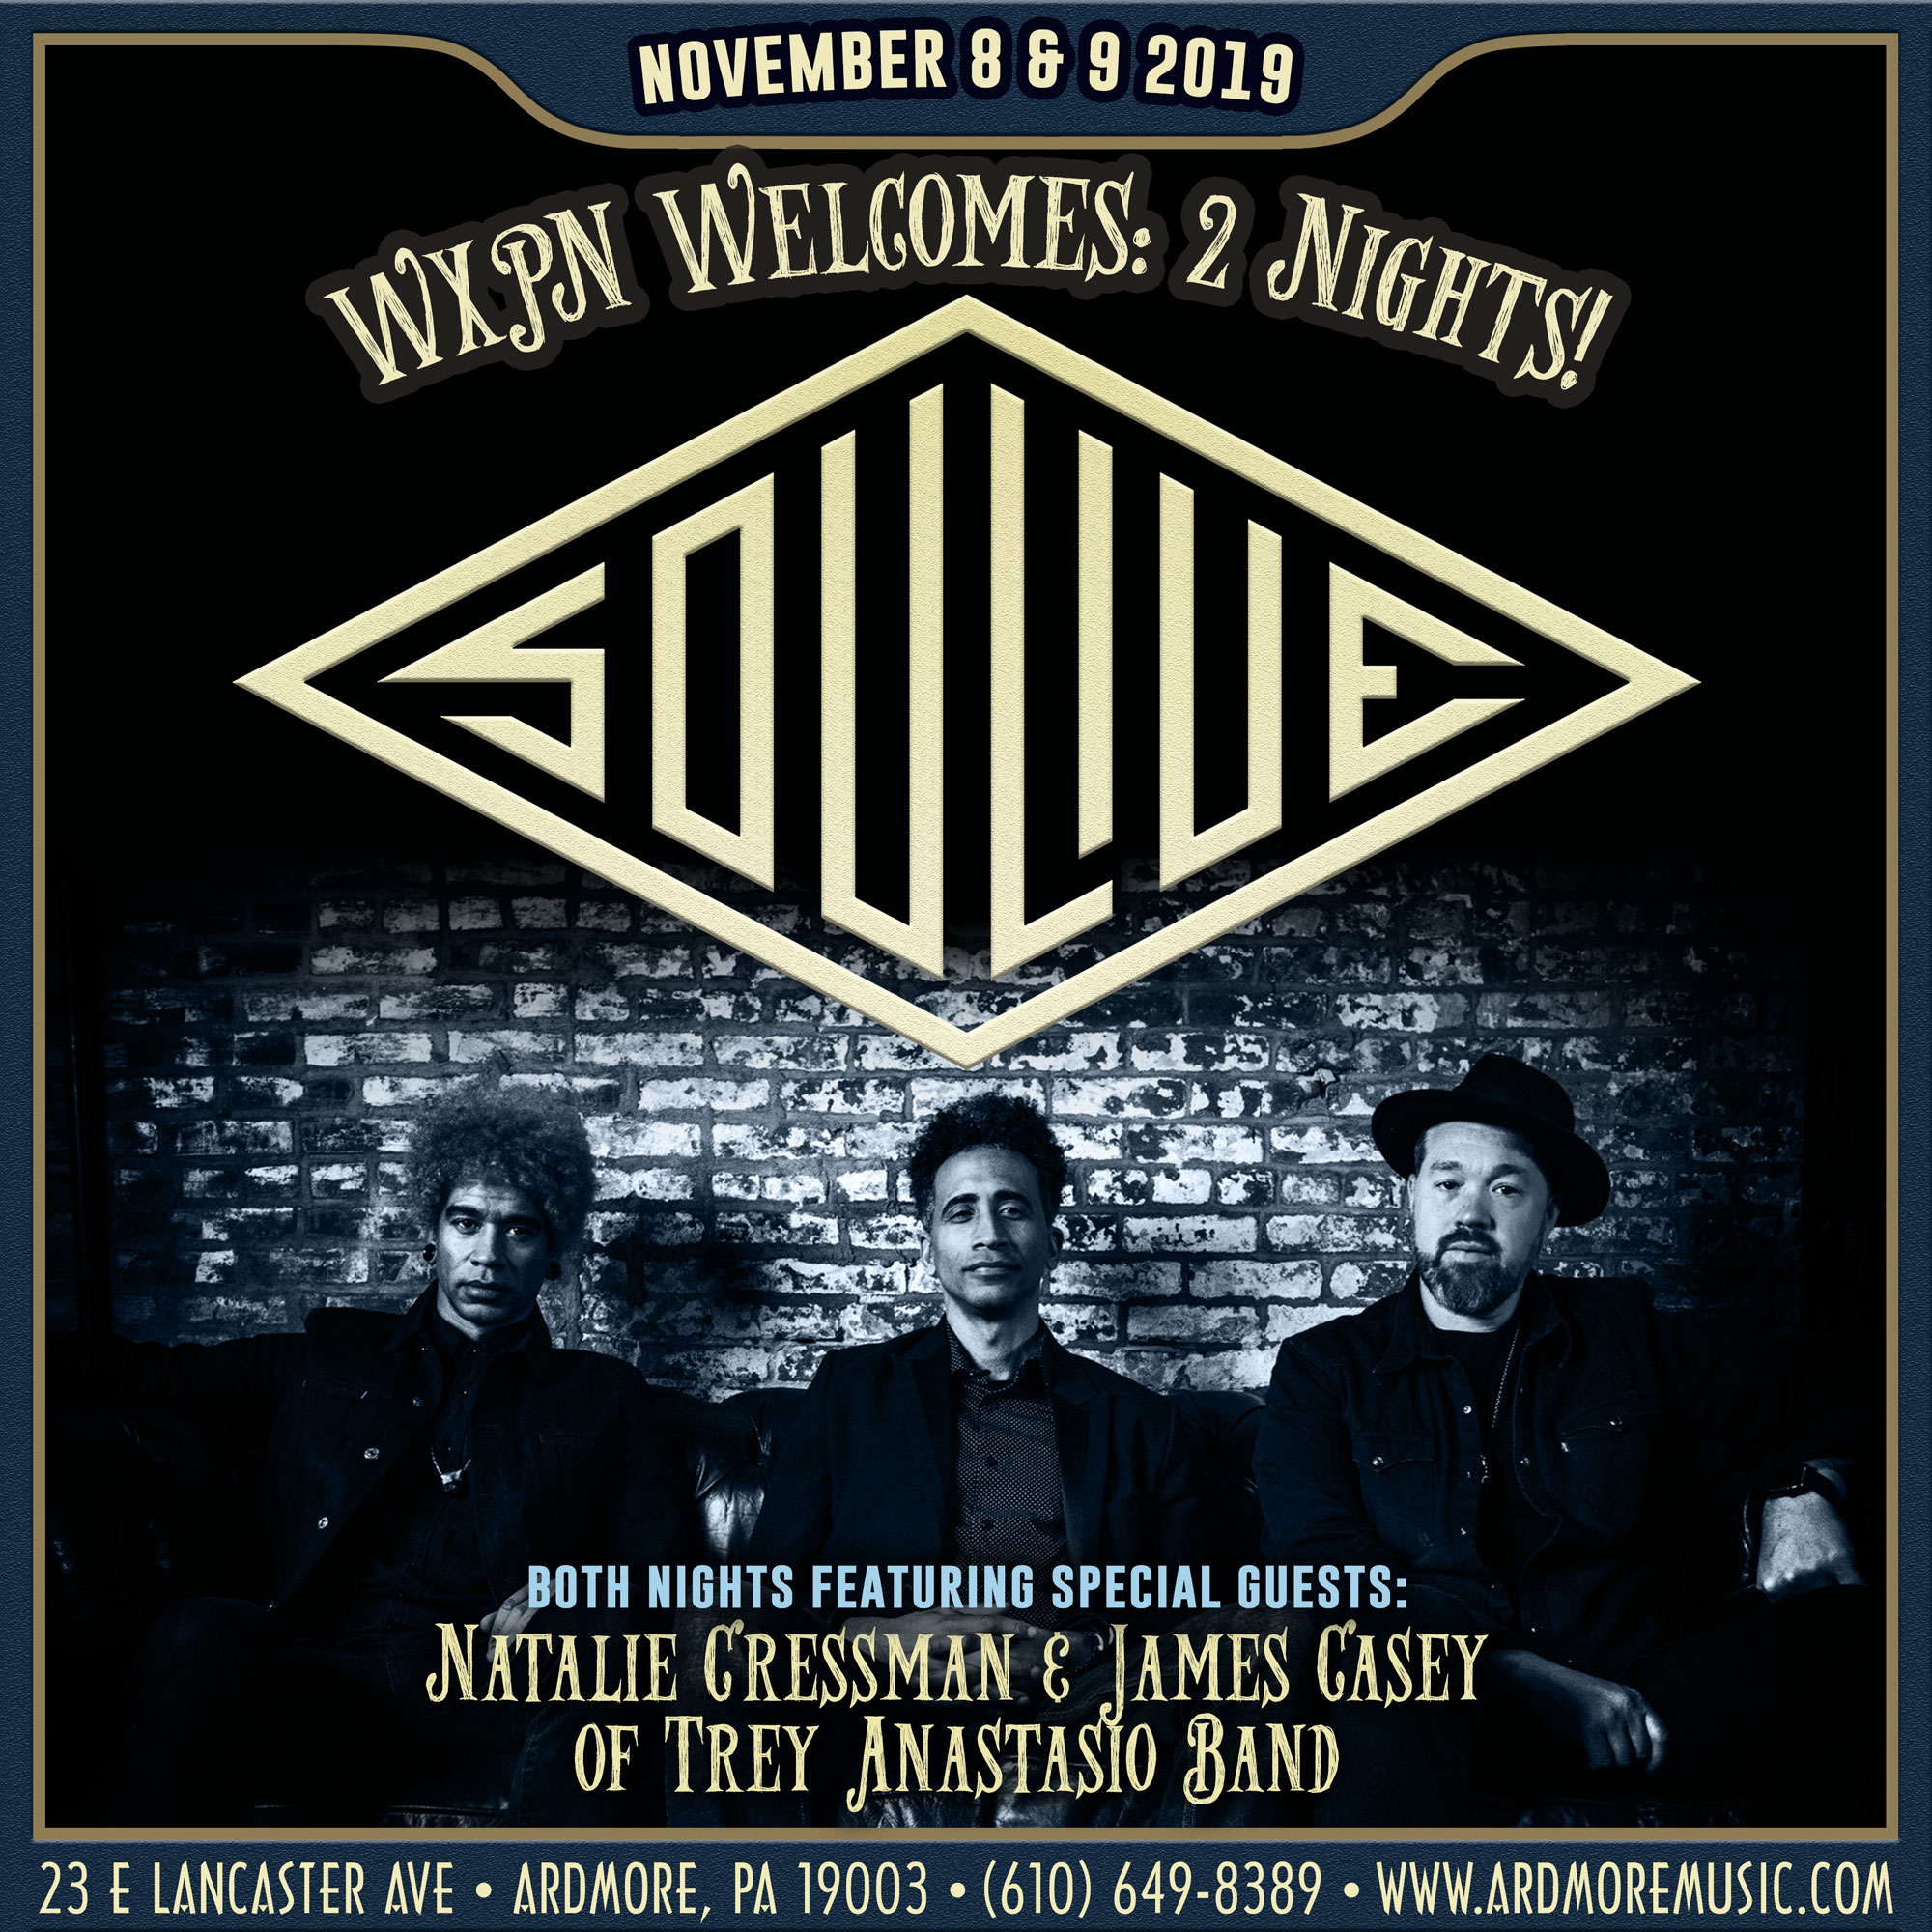 Soulive Returns for 2 Nights this November w/ Special Guests!